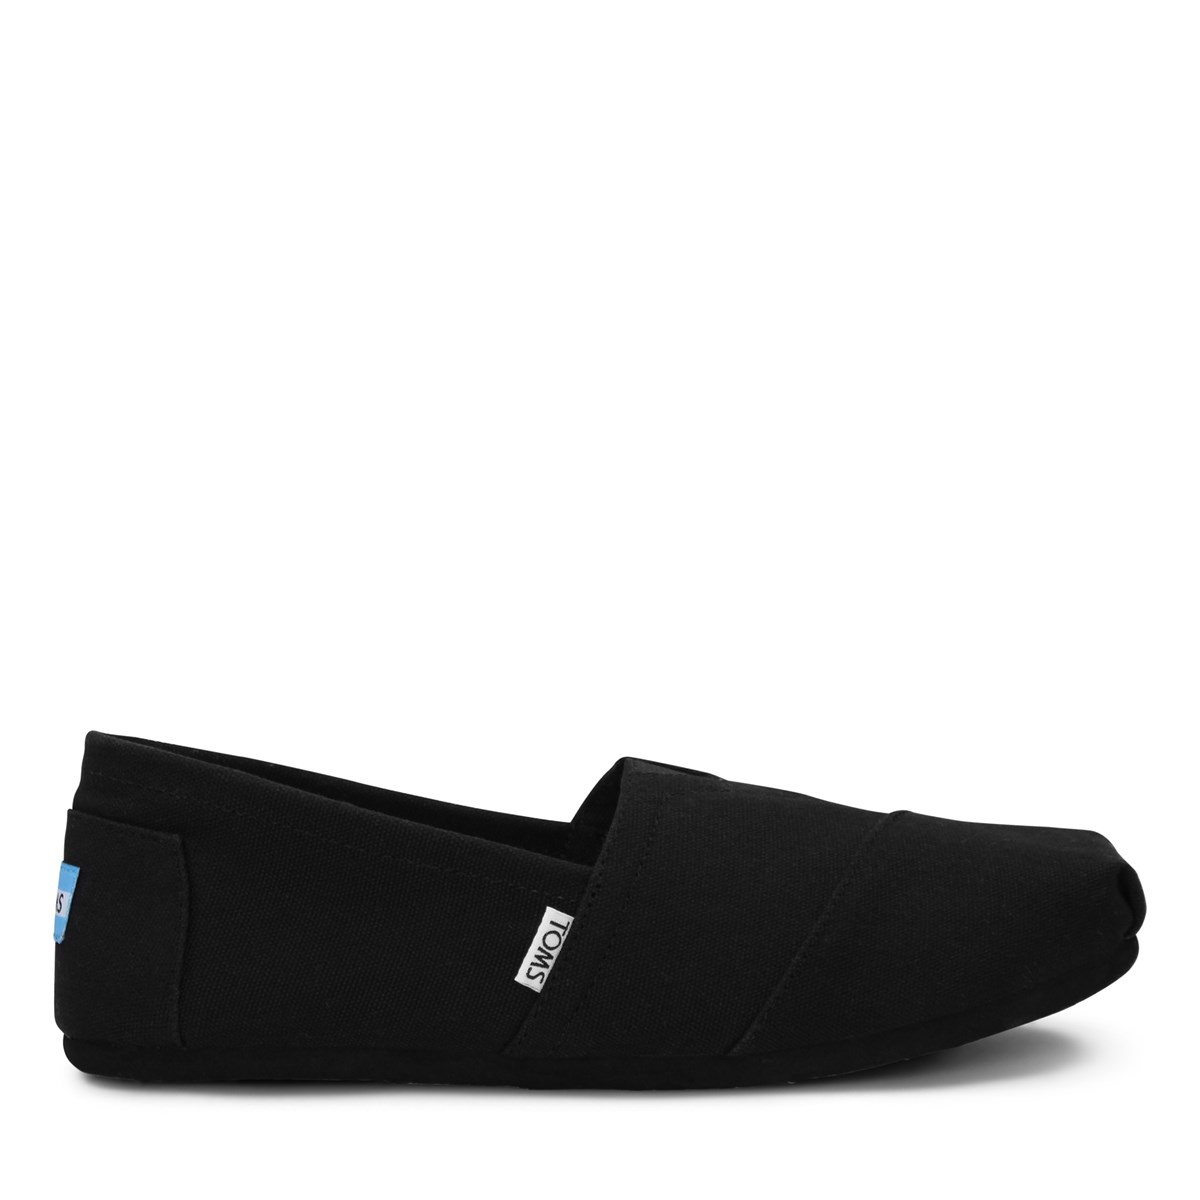 Men's Alpargata Slip-On Shoes in Black